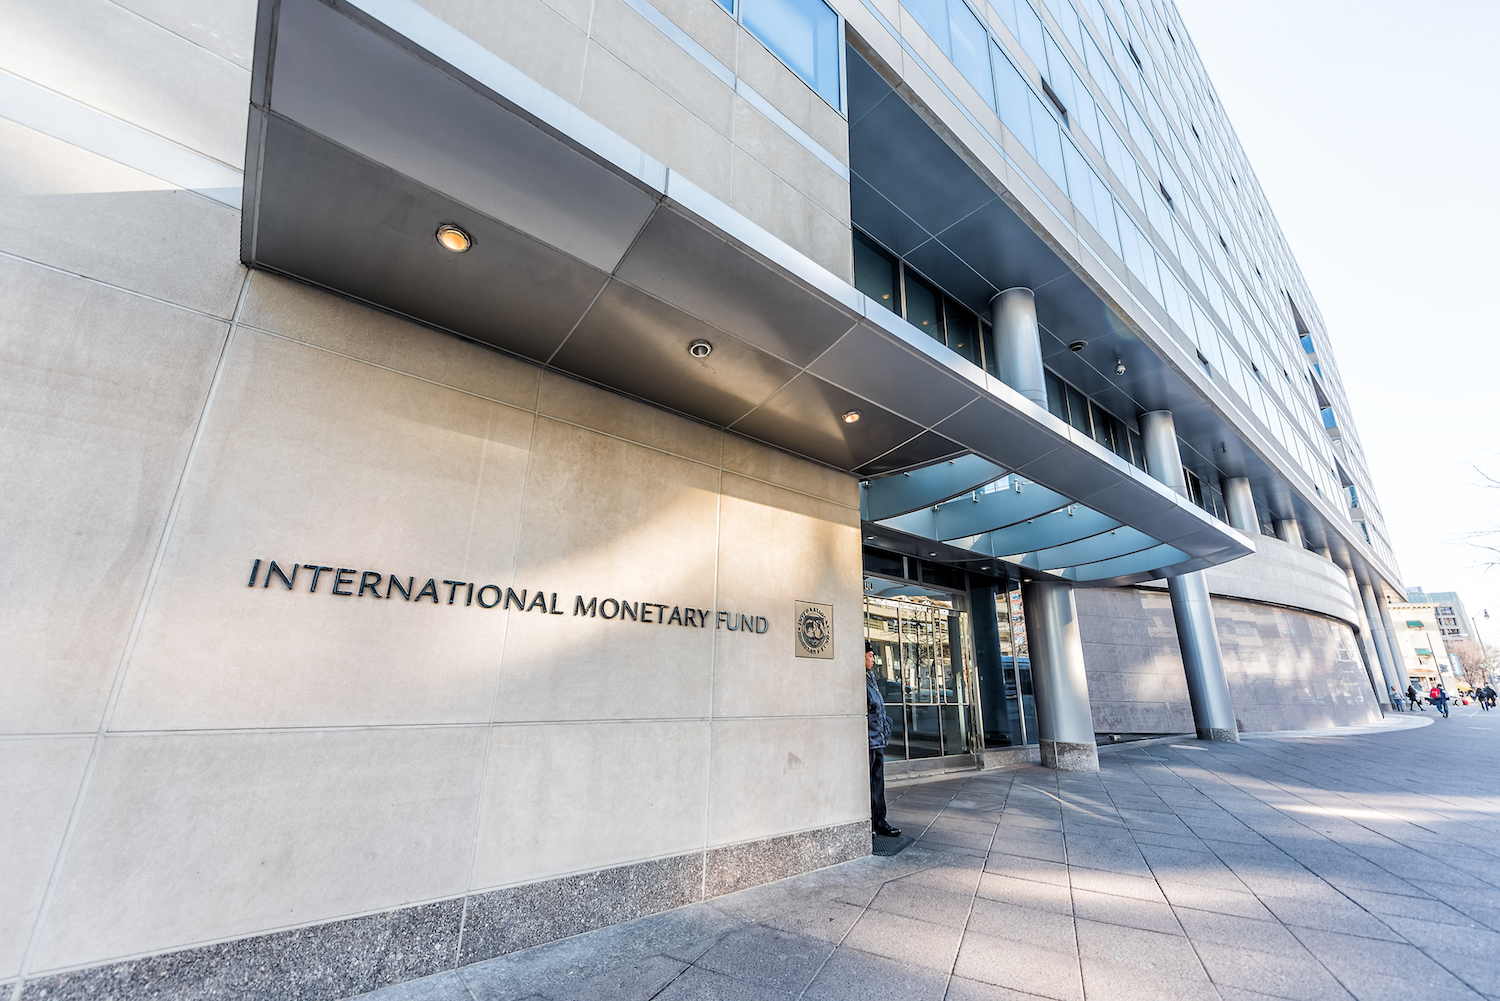 IMF Sees Sharp 4.4% Drop in Global Growth for 2020